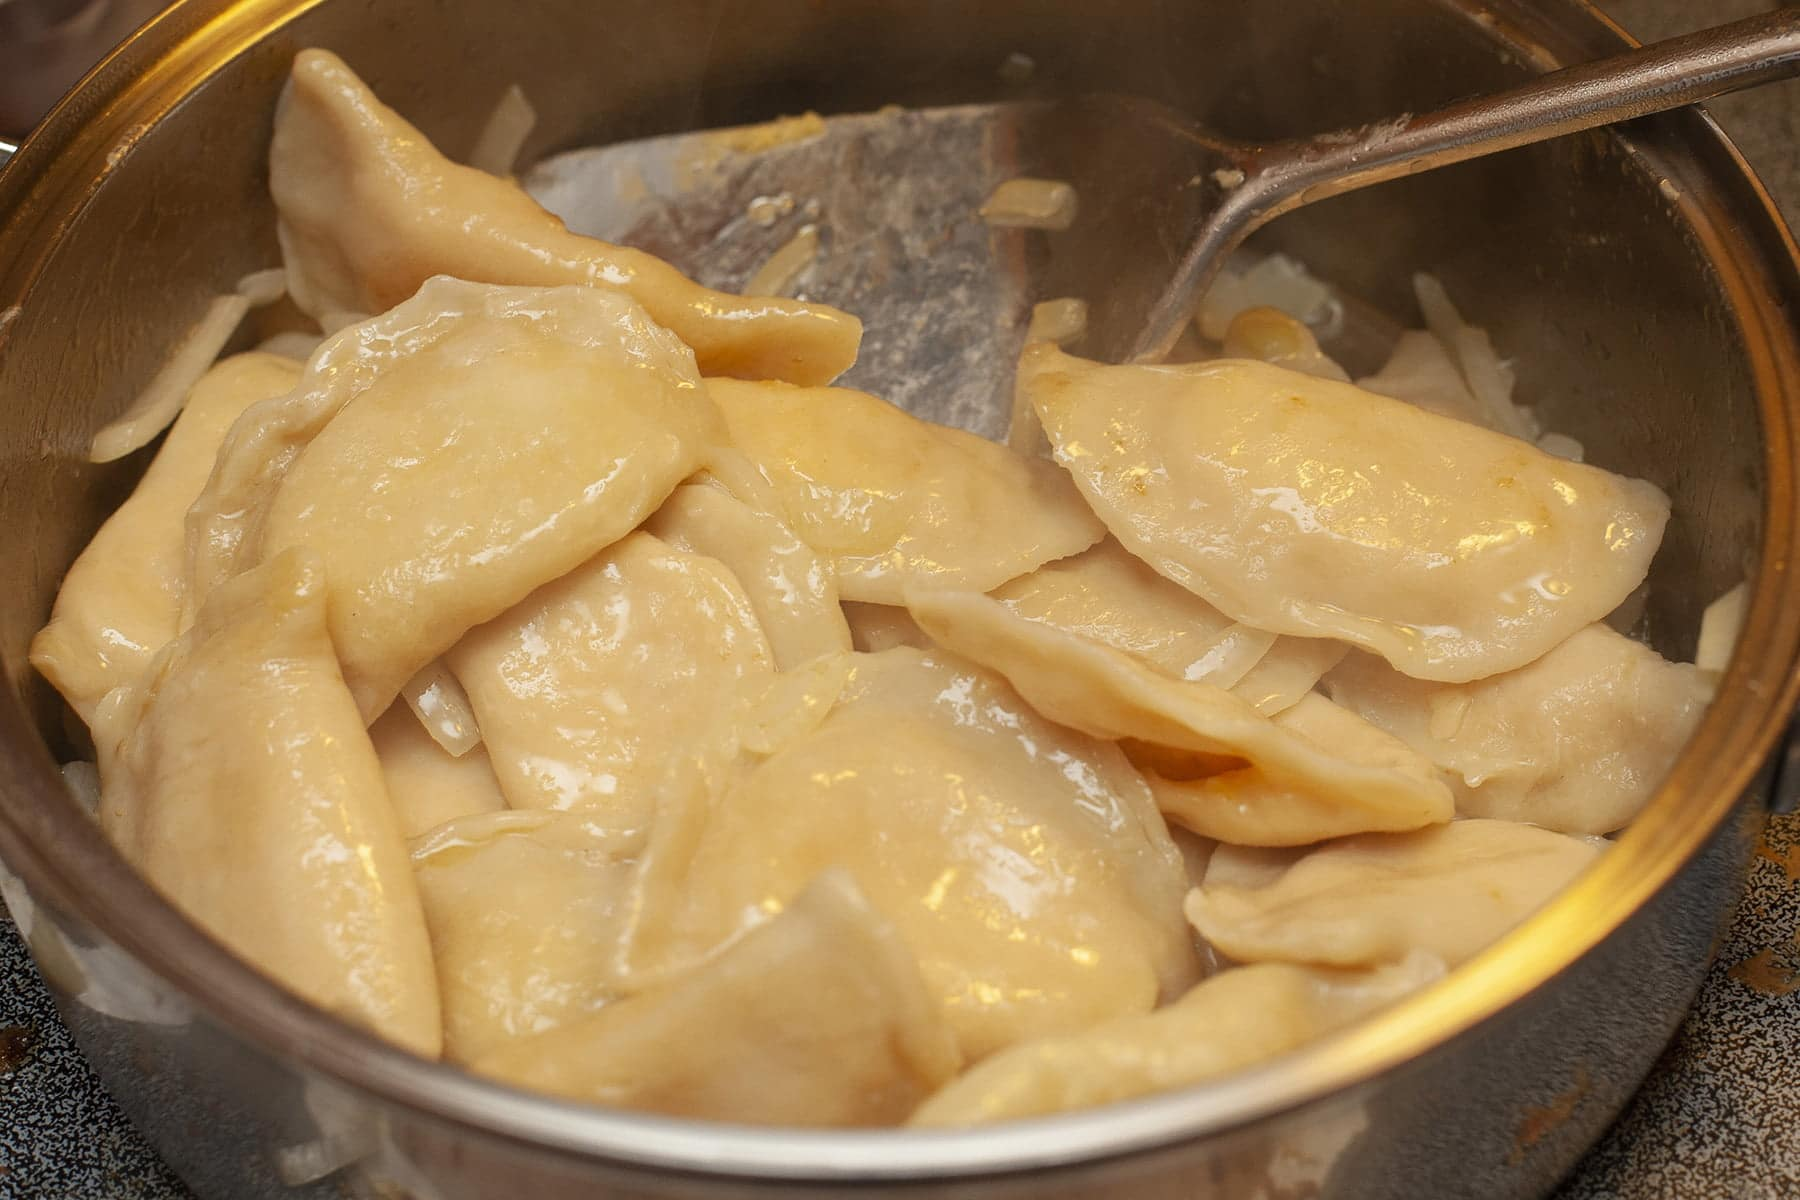 A large metal pan holds about a dozen perogies, being sauteed in butter.